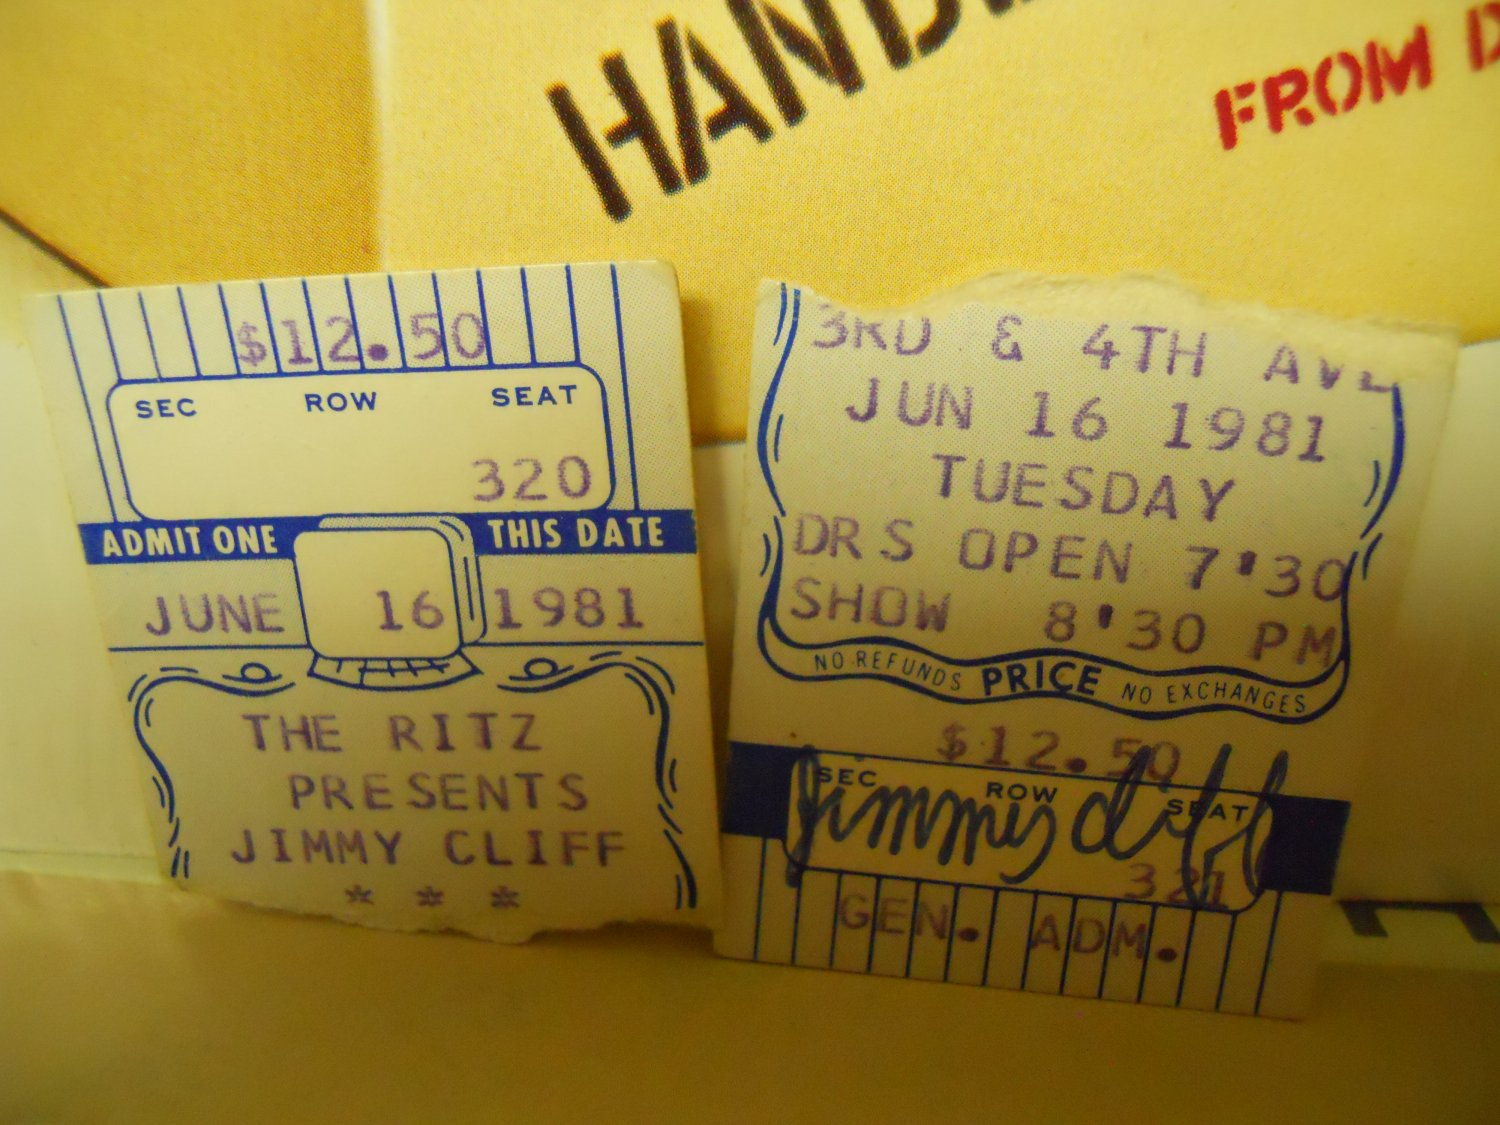 Reggae) Jimmy Cliff 2 Used VG+ 1981 Ritz New York Ticket Stubs